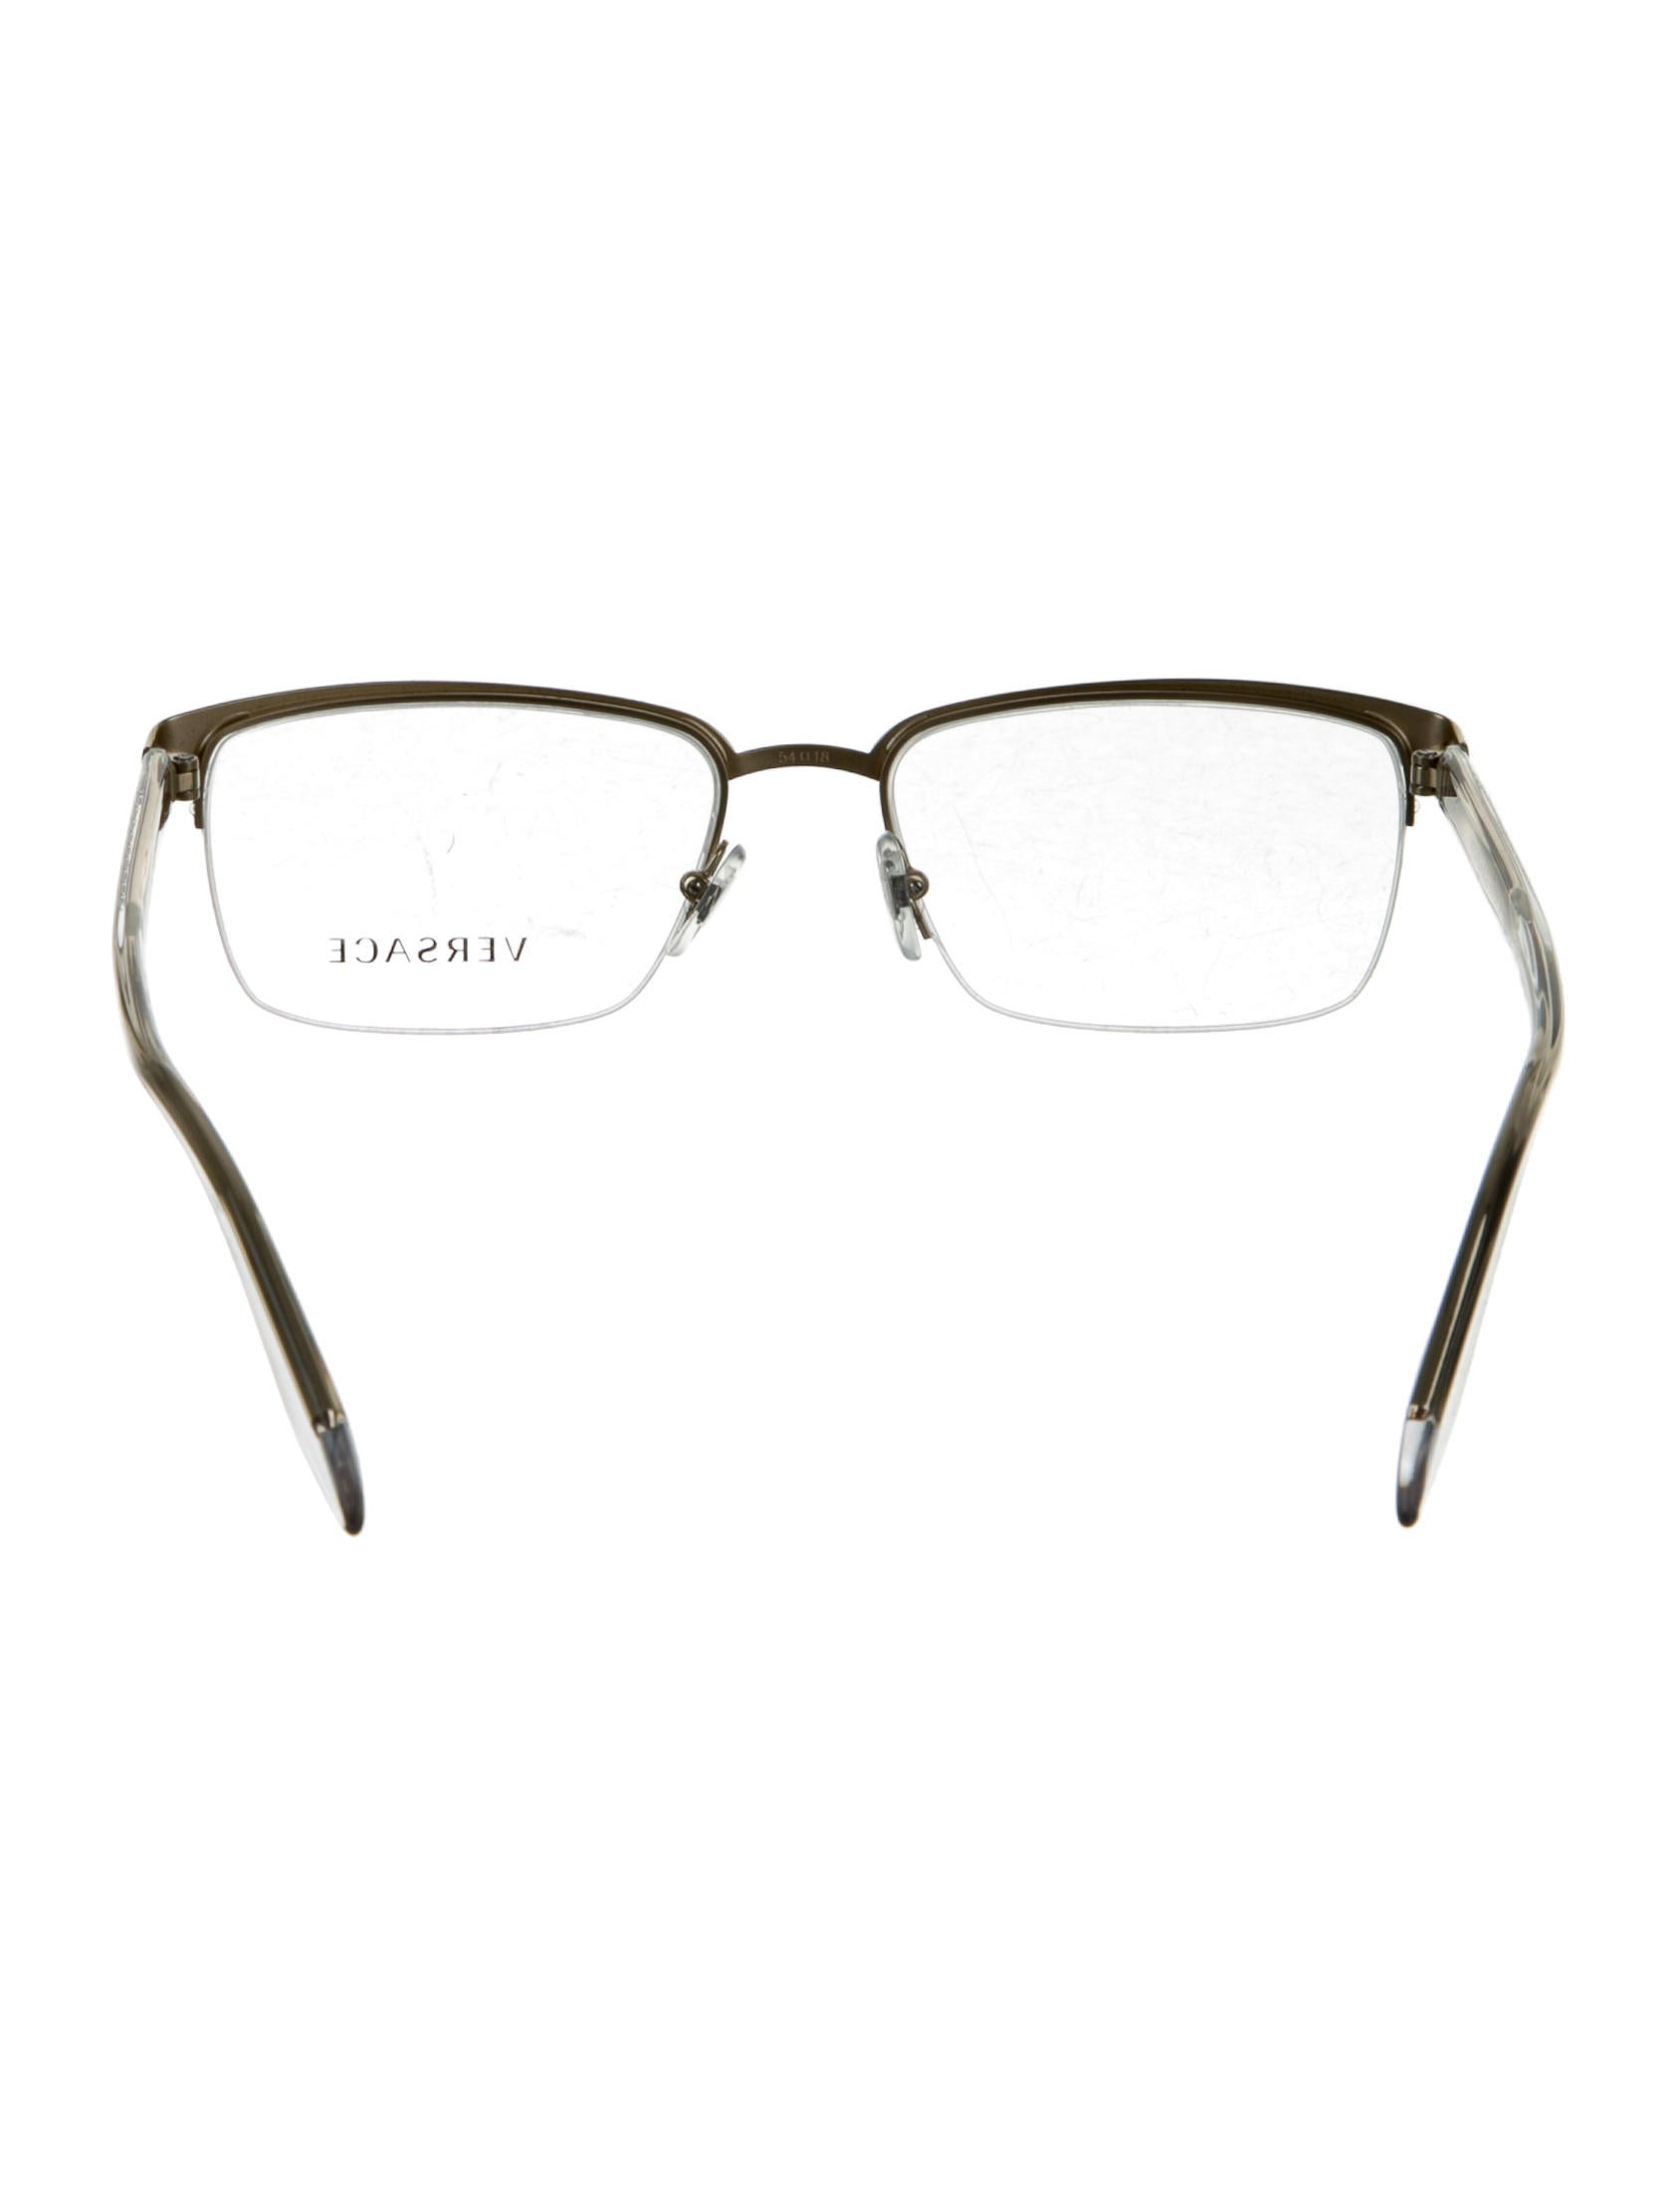 Versace Metallic Semi-Rimless Eyeglasses w/ Tags ...